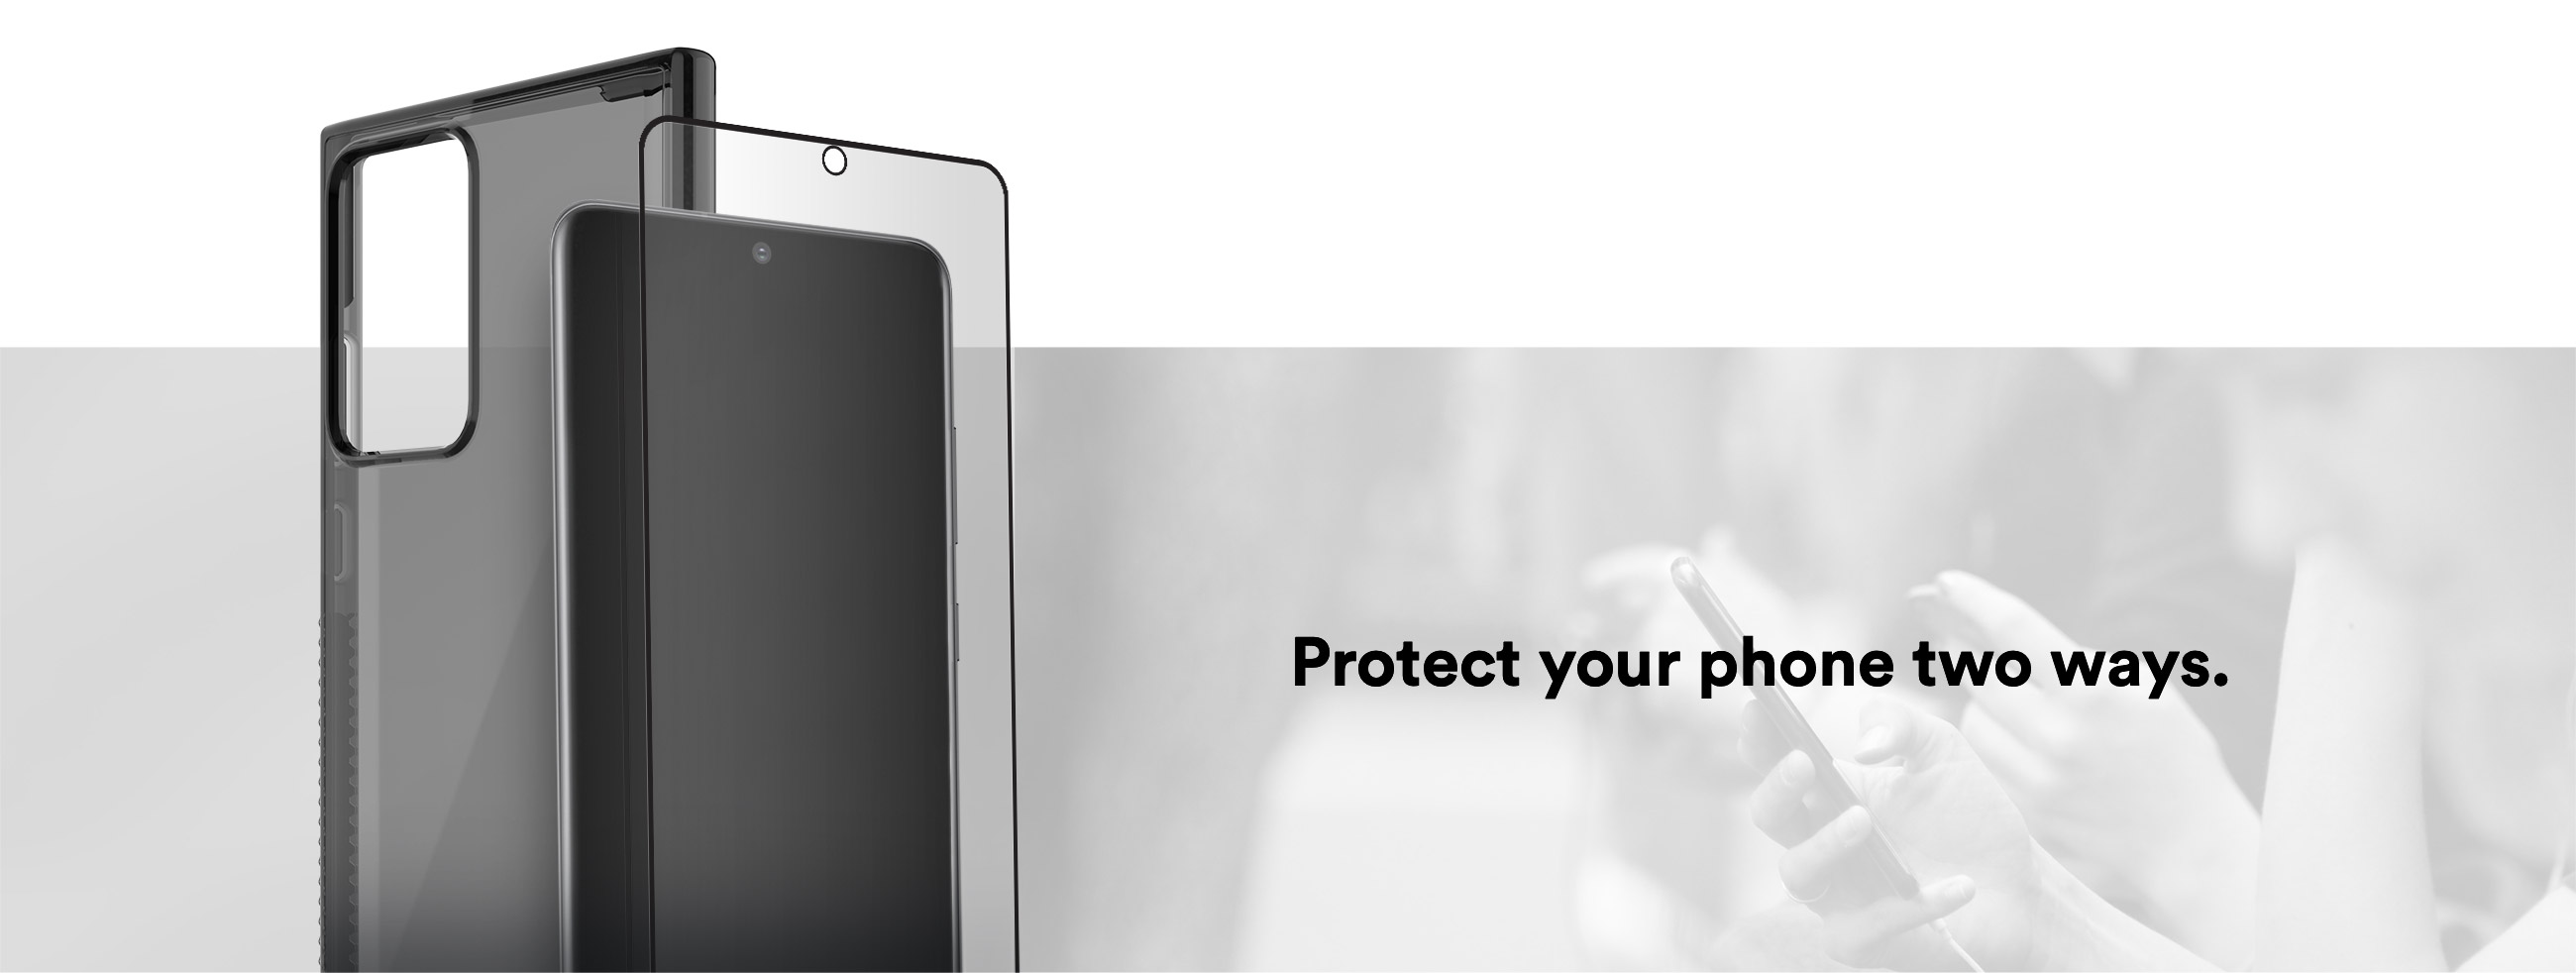 Protect your phone with cases and screen protectors from BodyGuardz